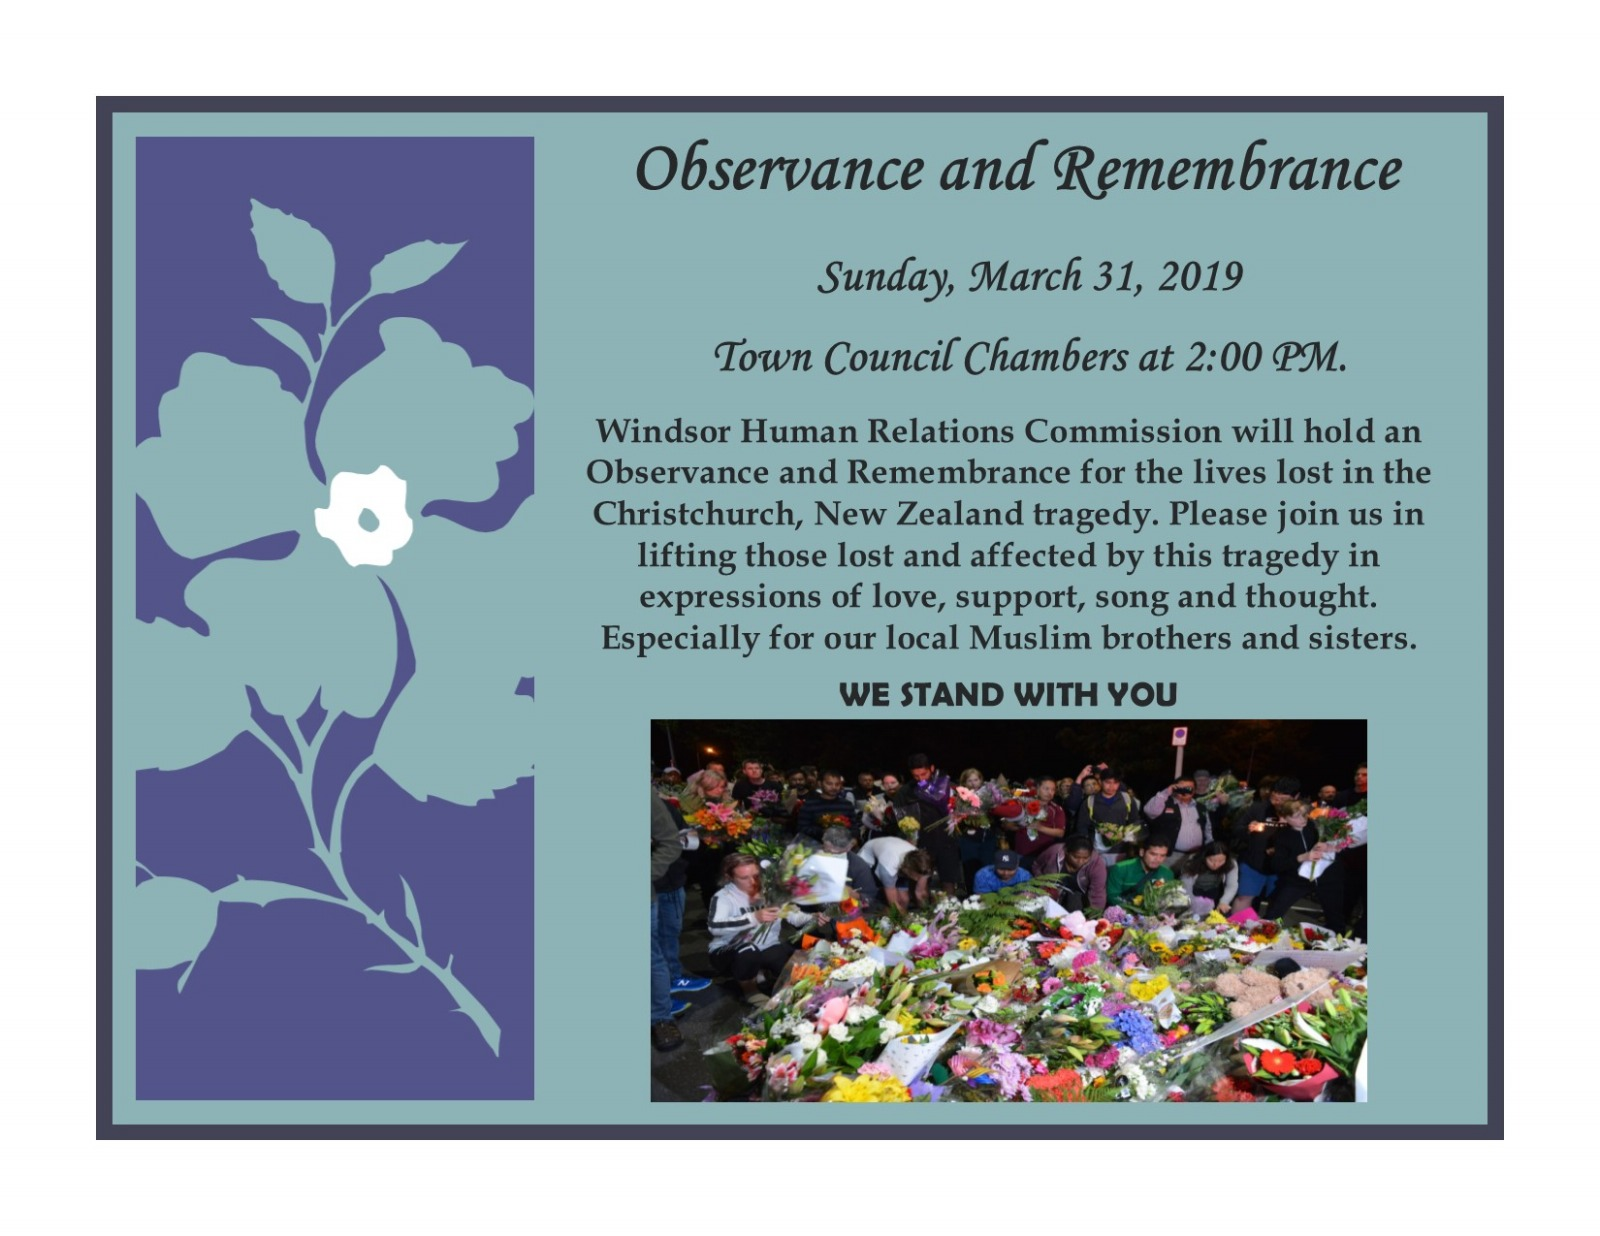 Observance and Remembrance Ceremony